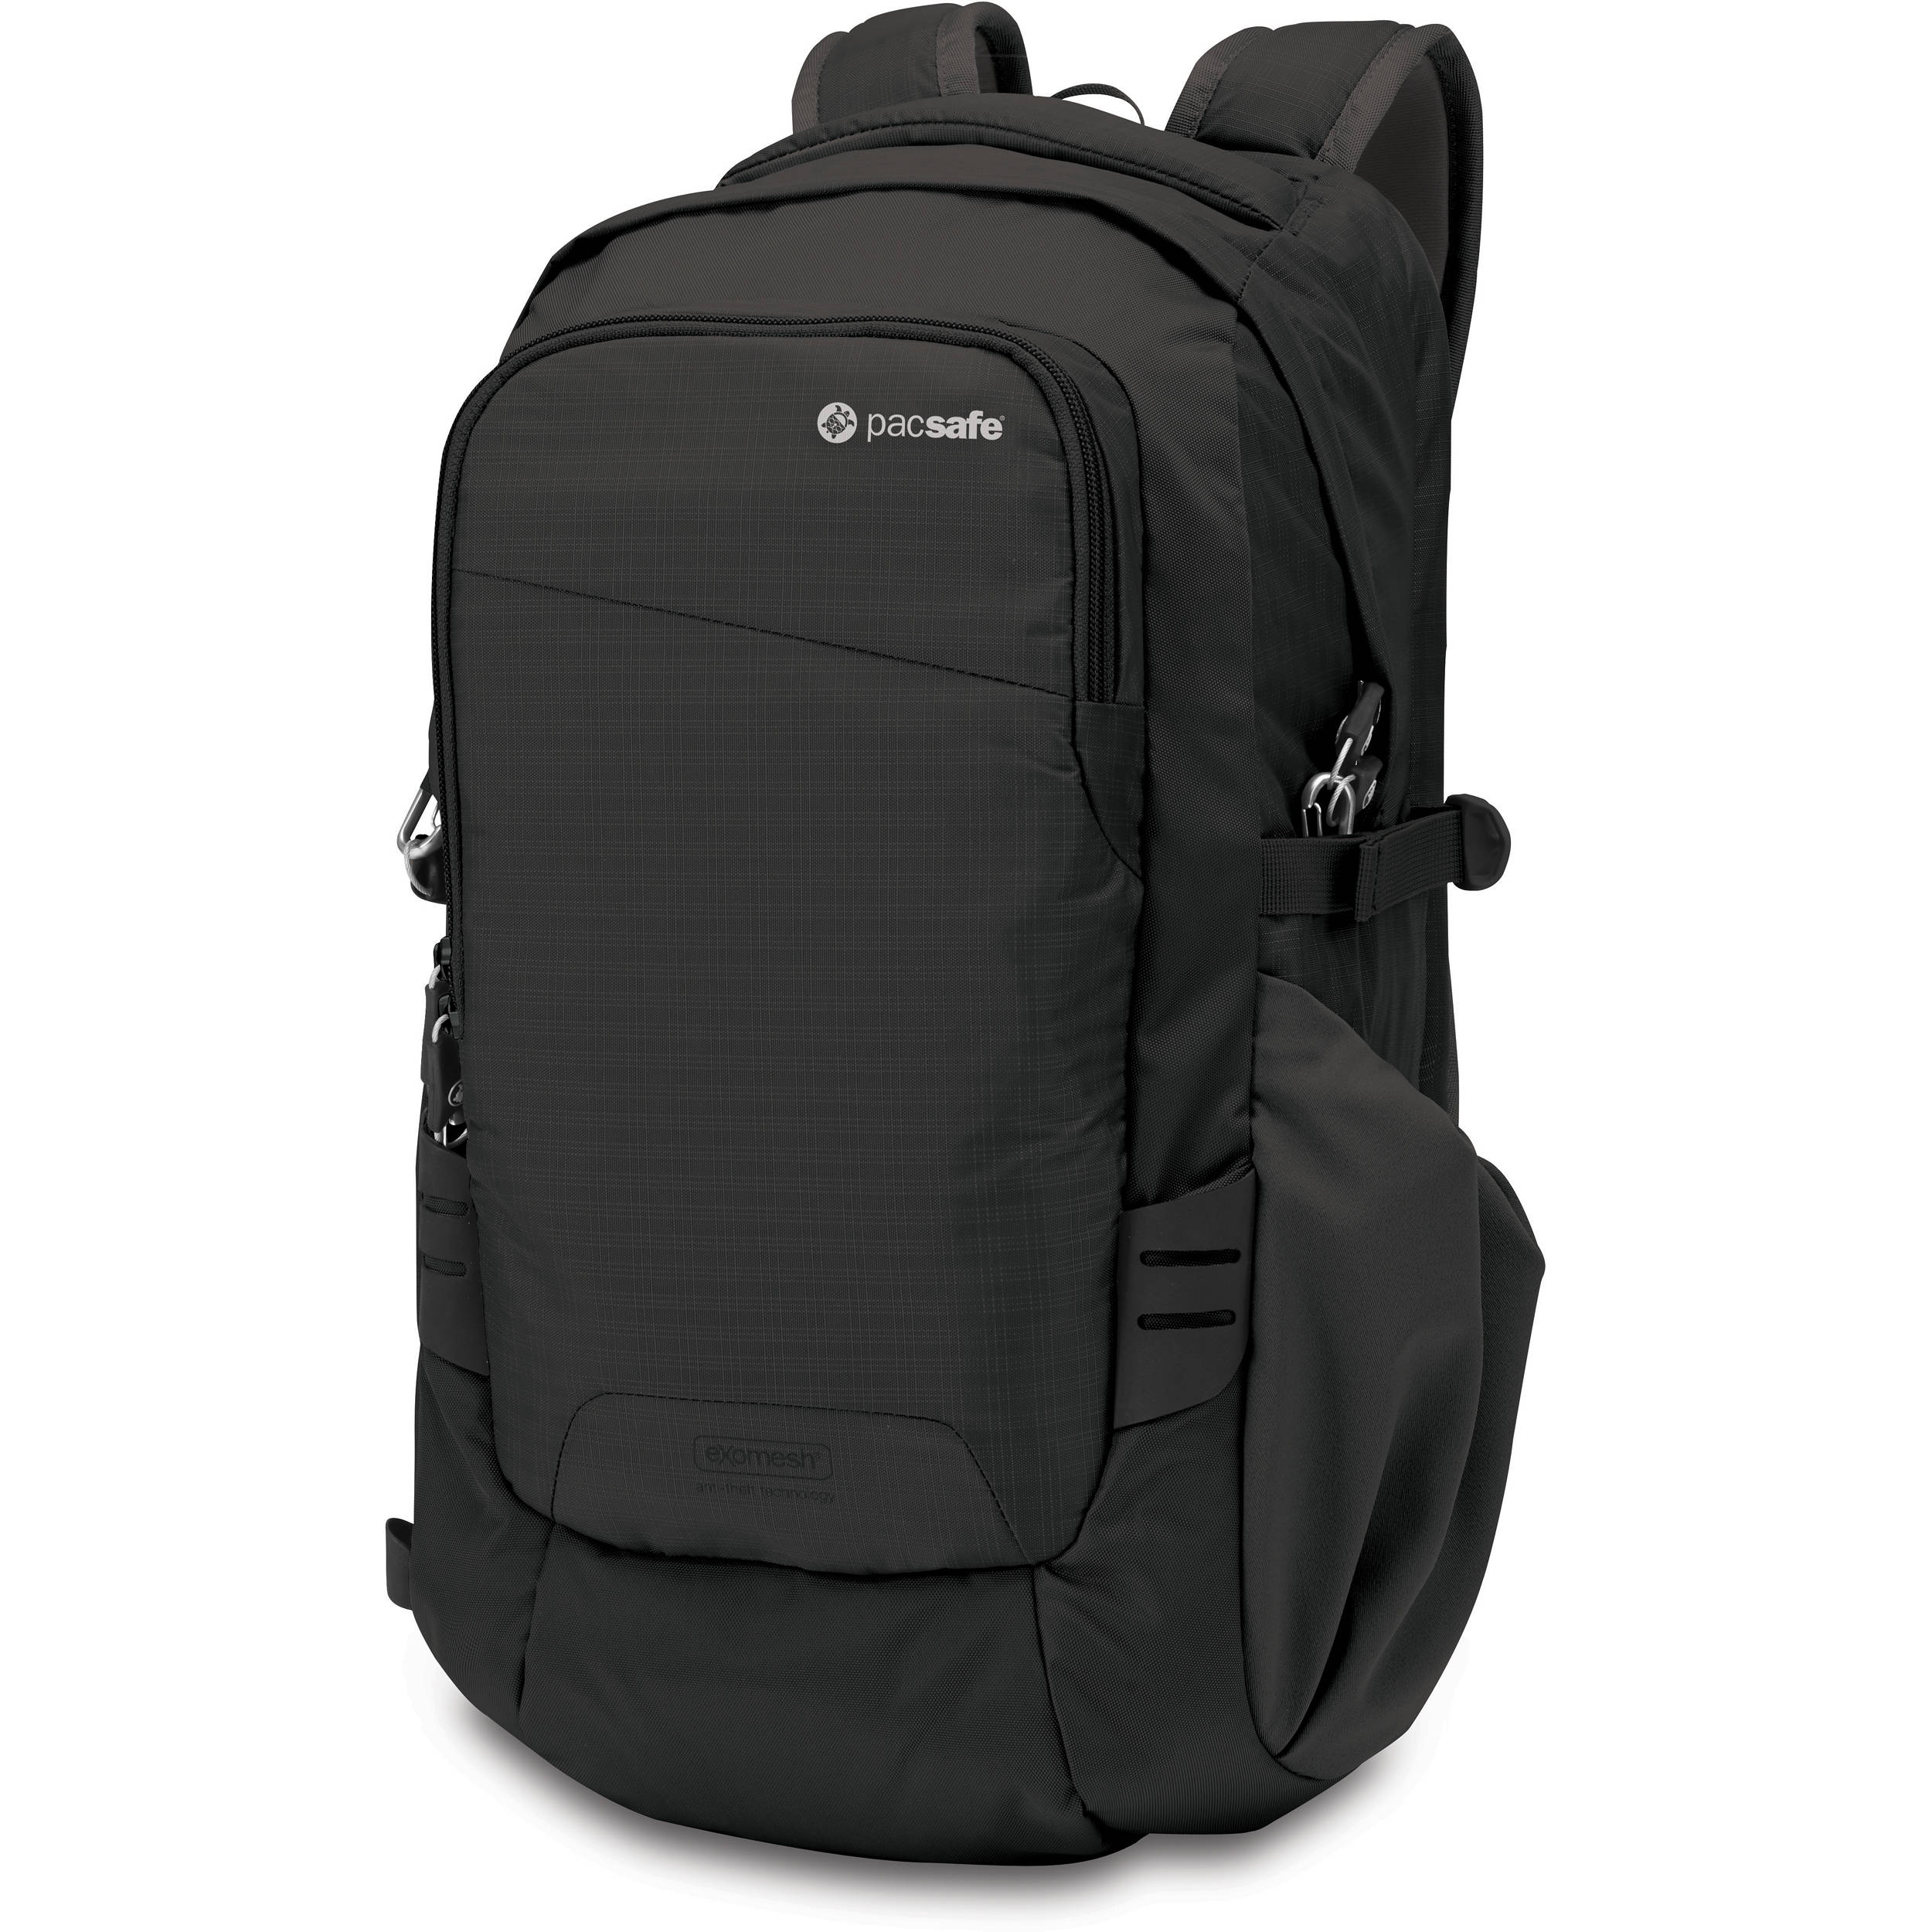 Pacsafe Camsafe V17 Anti Theft Camera Backpack Black